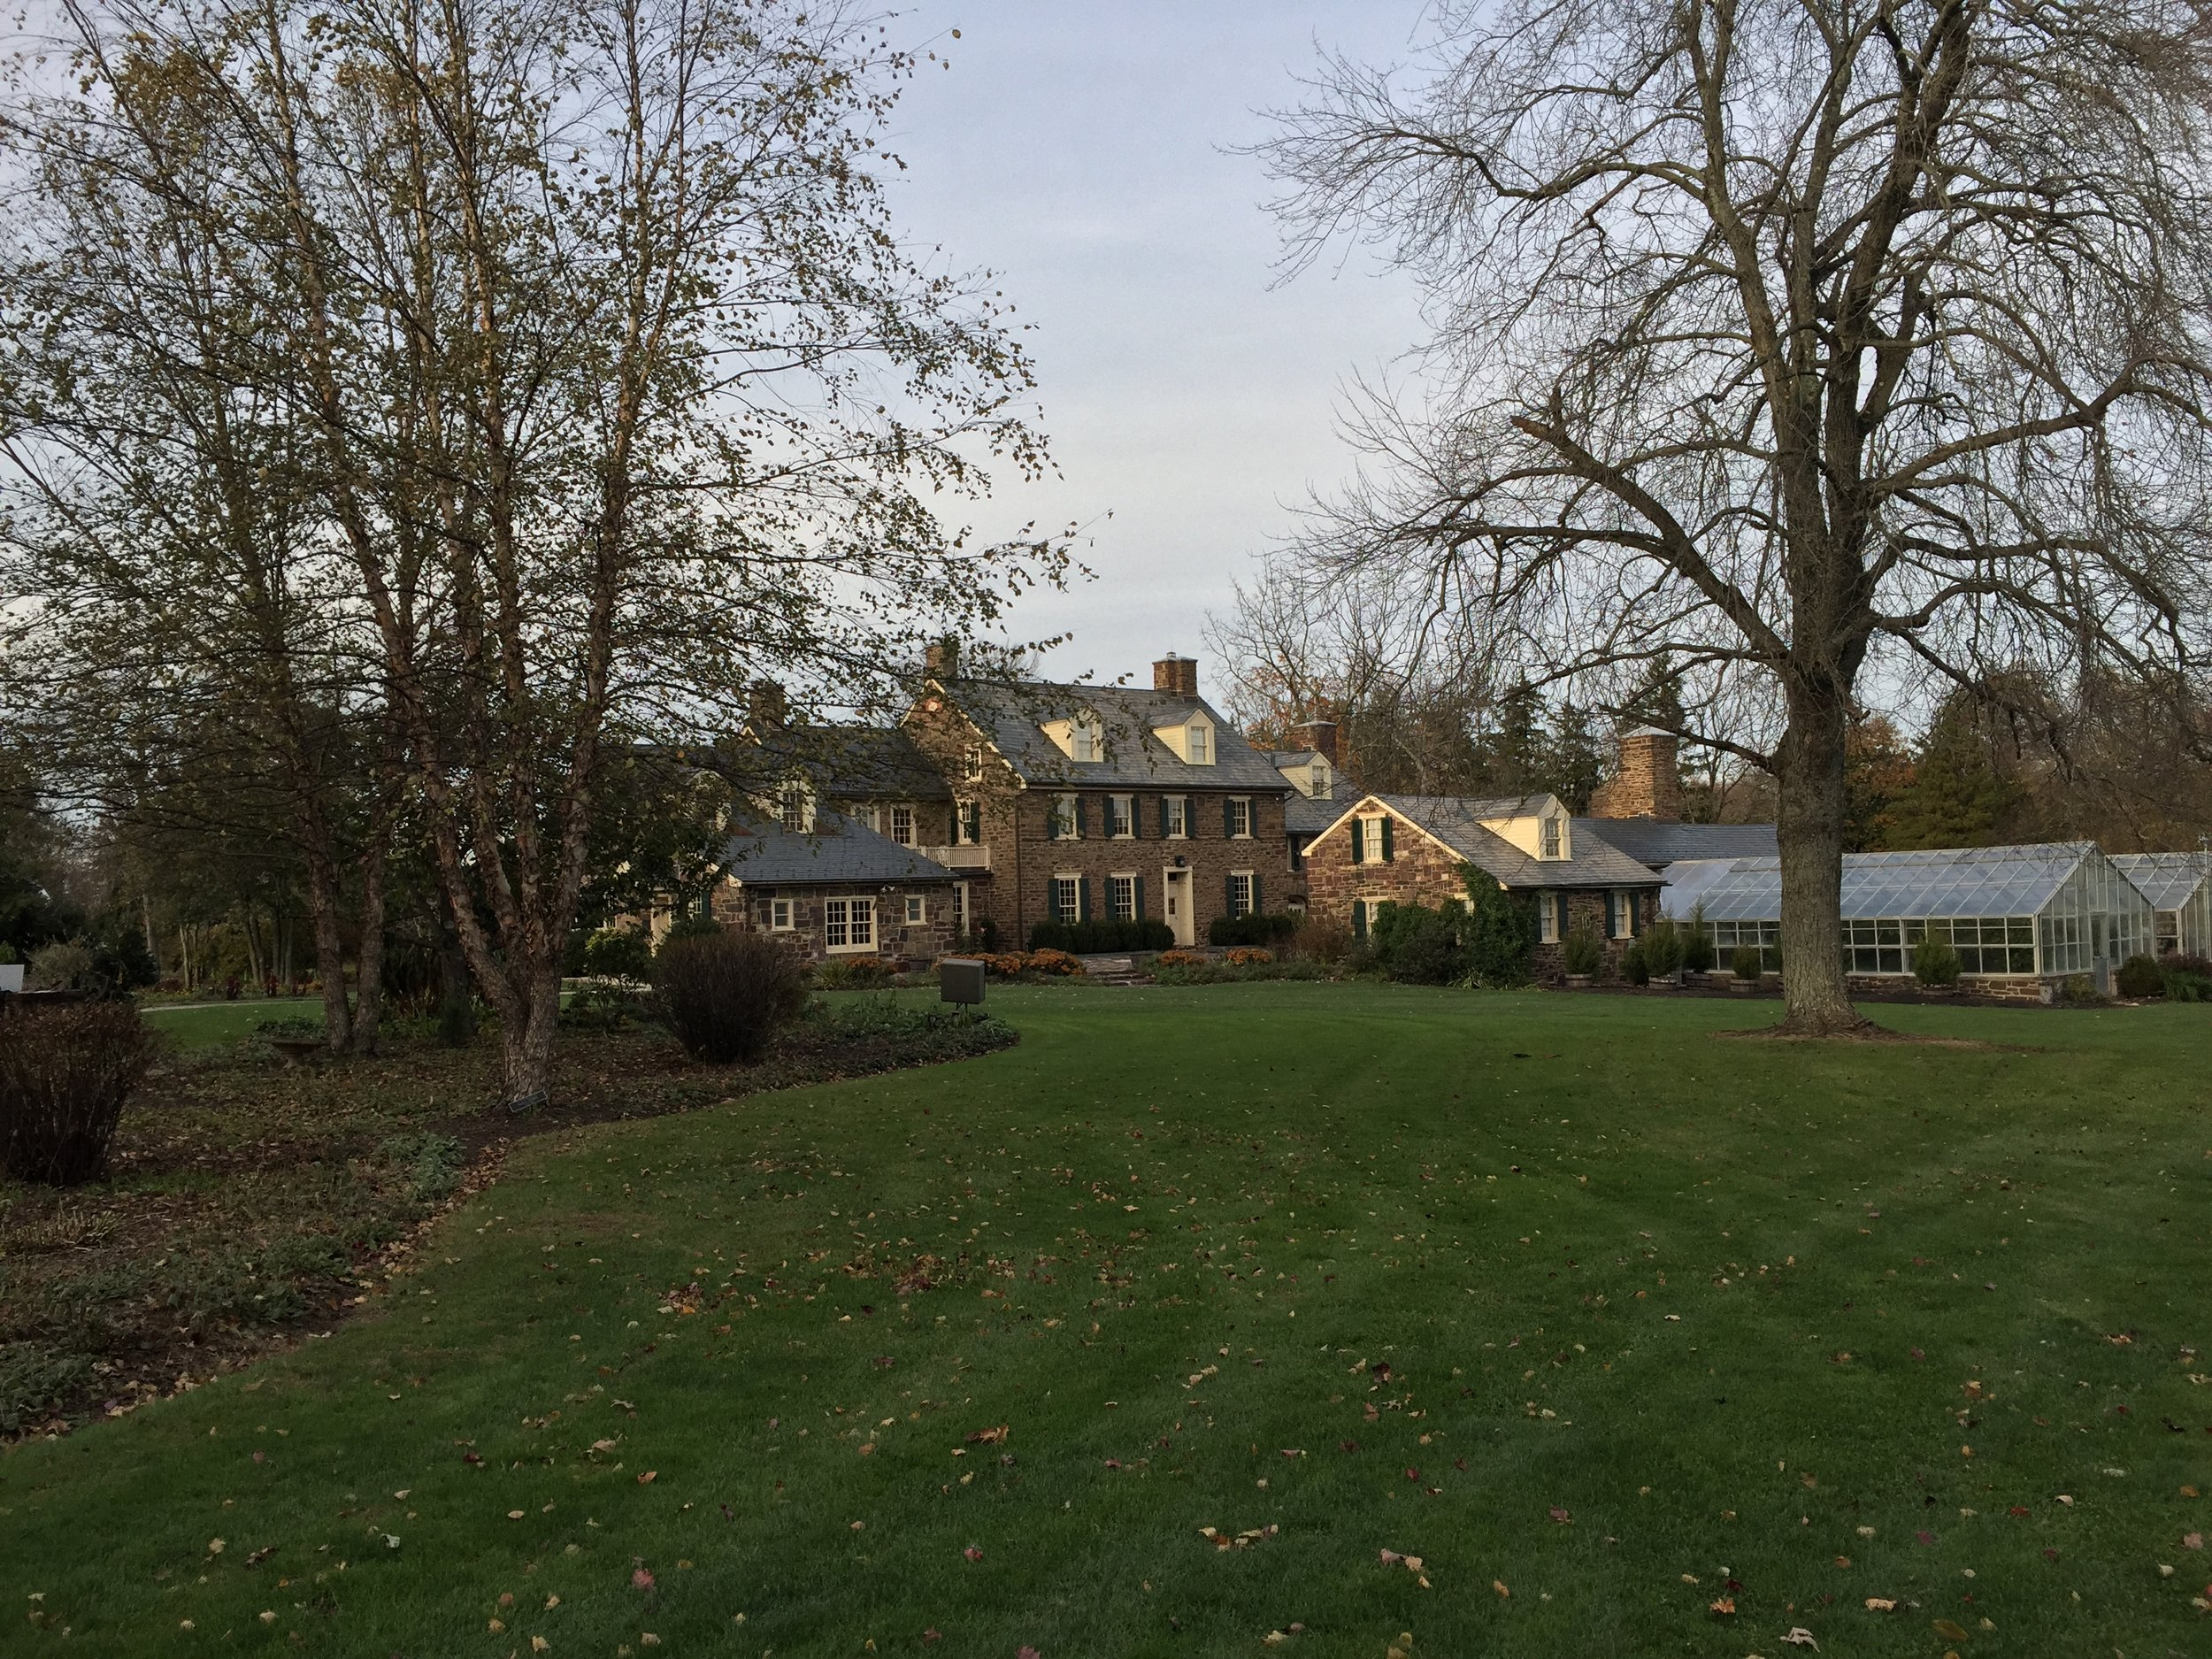 The Pearl S. Buck house proper, complete with   manicured lawns and sprawling masonry.